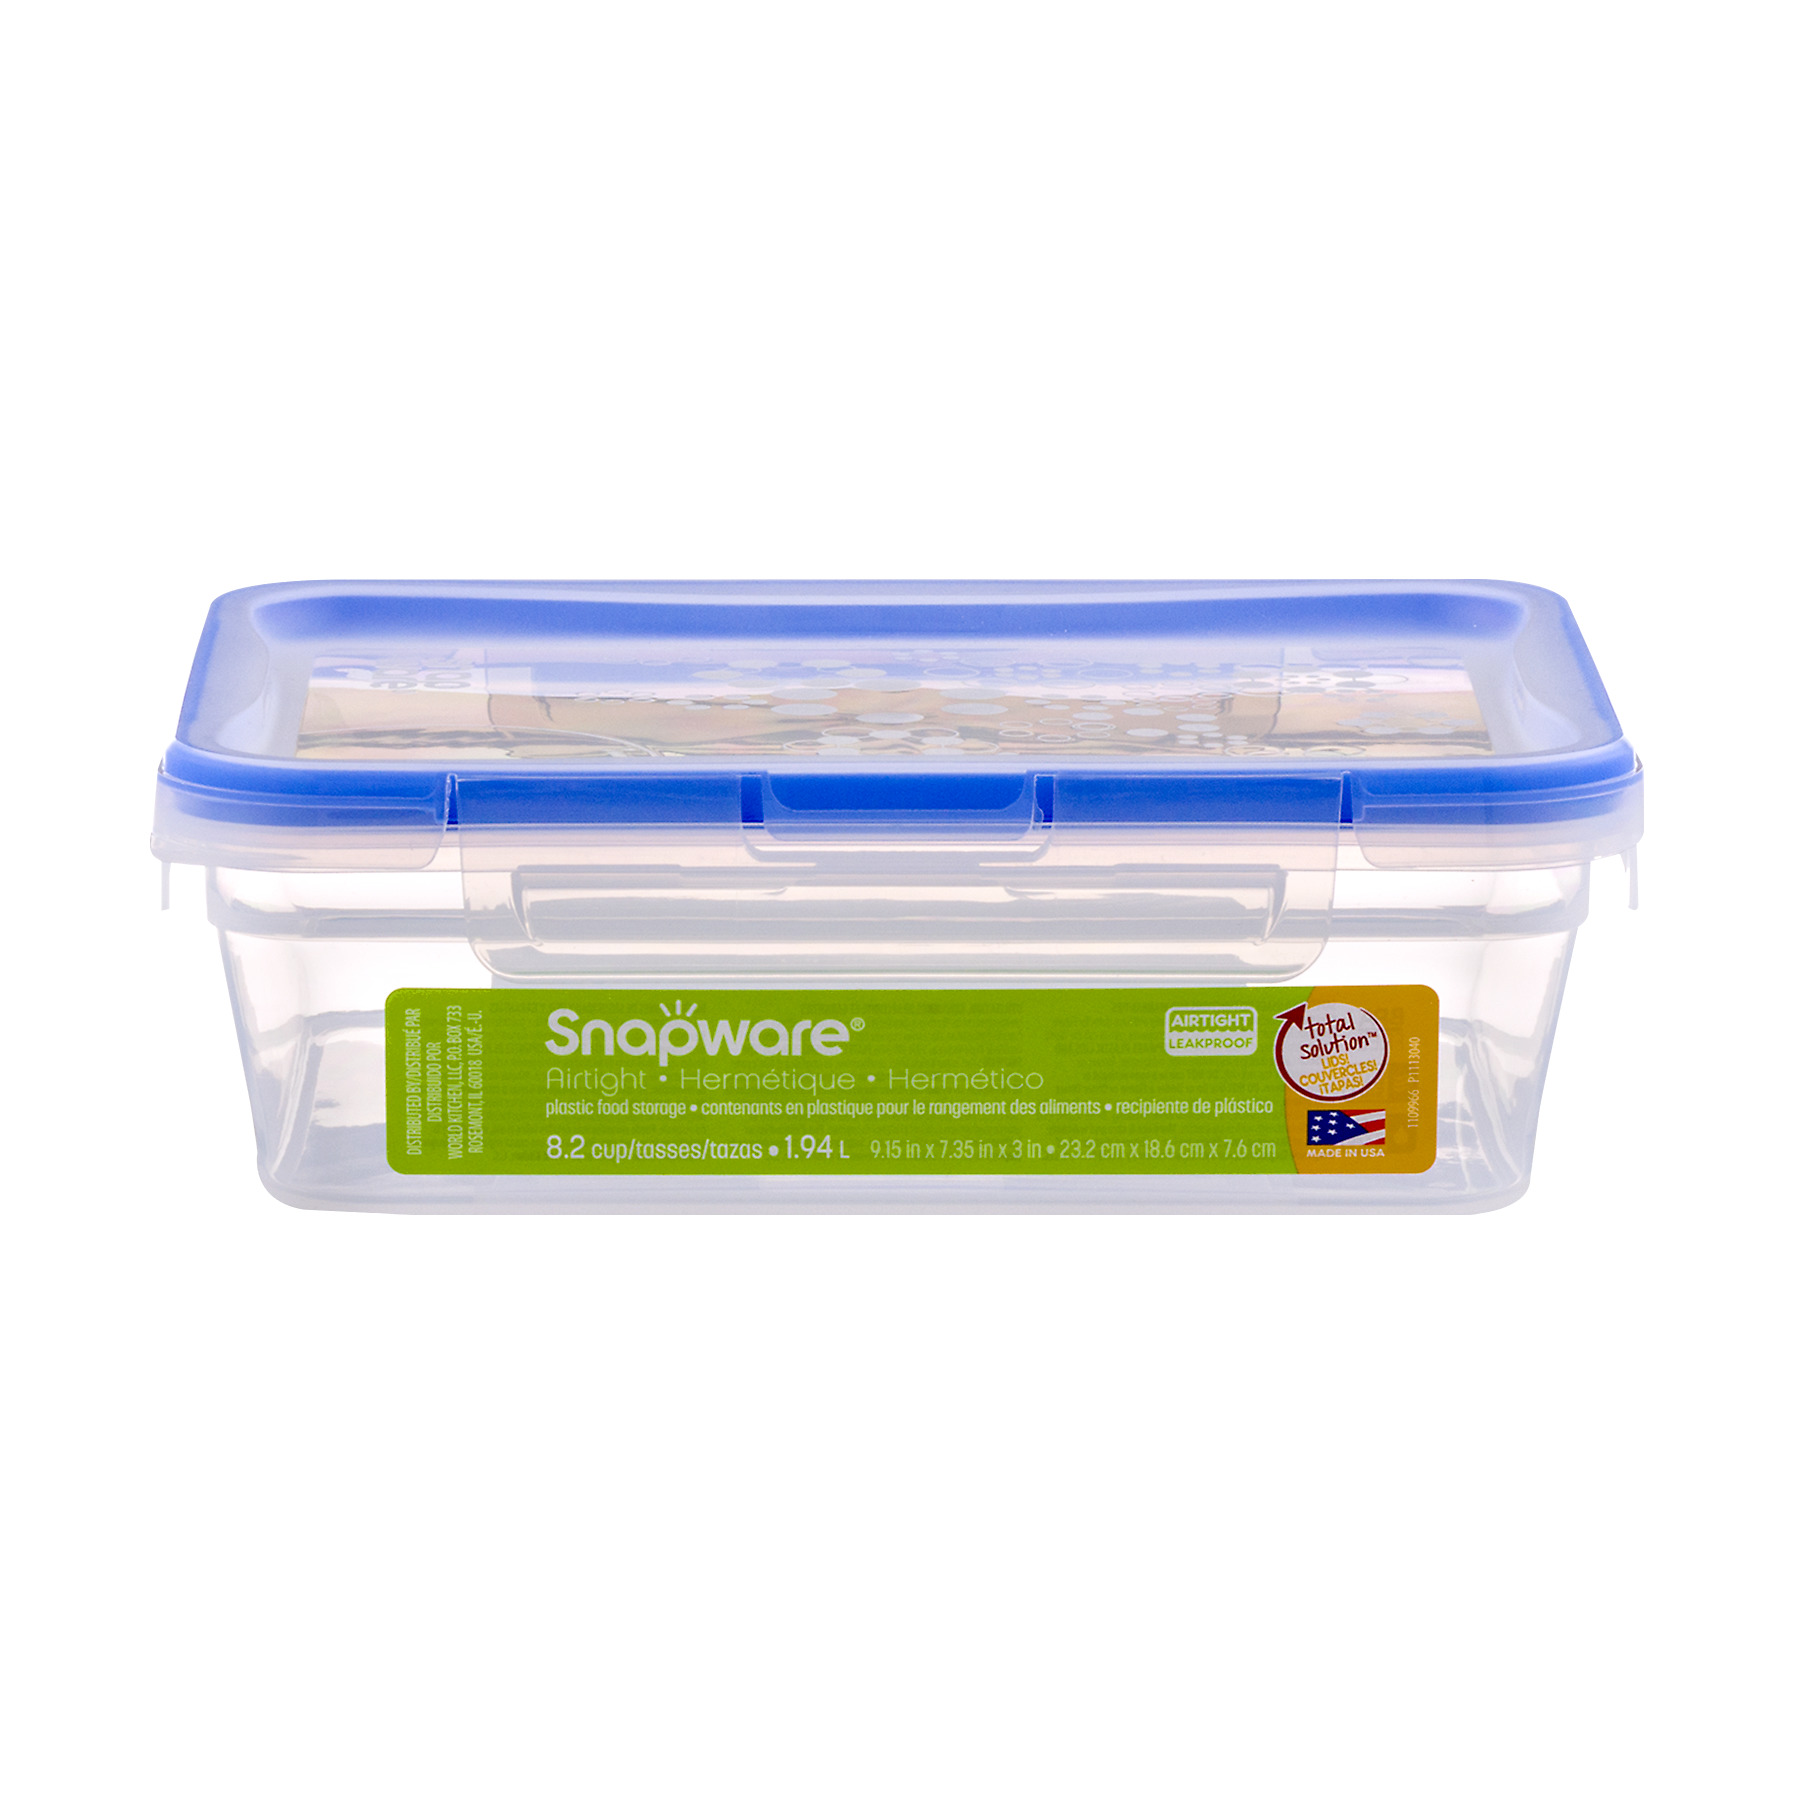 World Kitchen, Inc Snapware Airtight Leakproof Plastic Food Storage, 1.0 CT